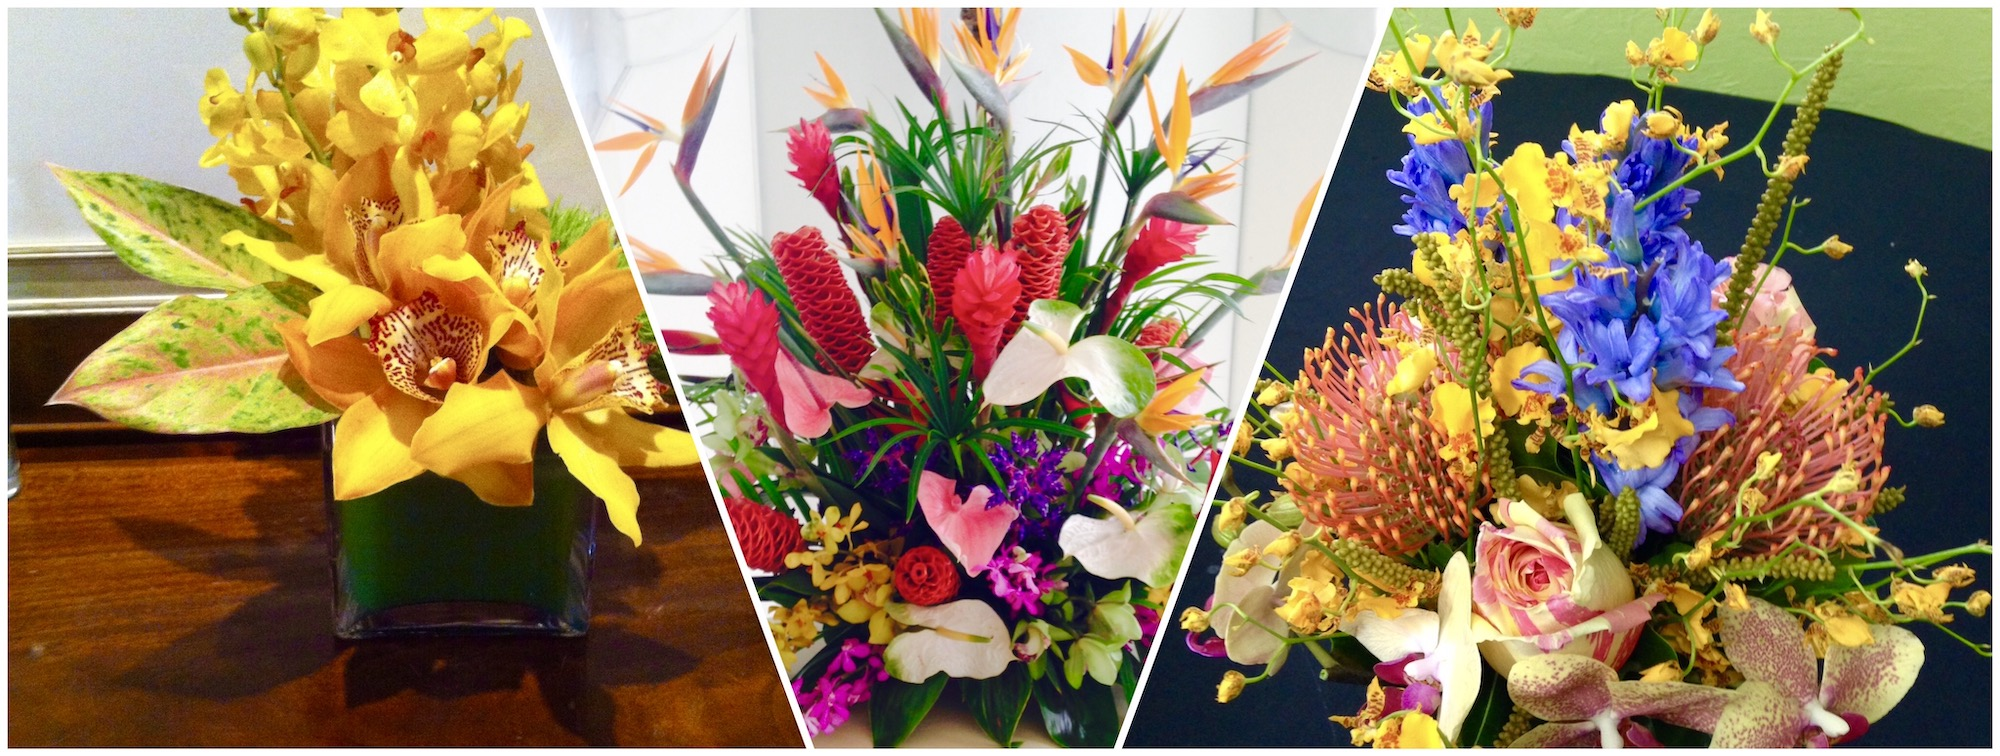 Yacht Floral Arrangements Service - West Palm Beach, FL Velene's Floral